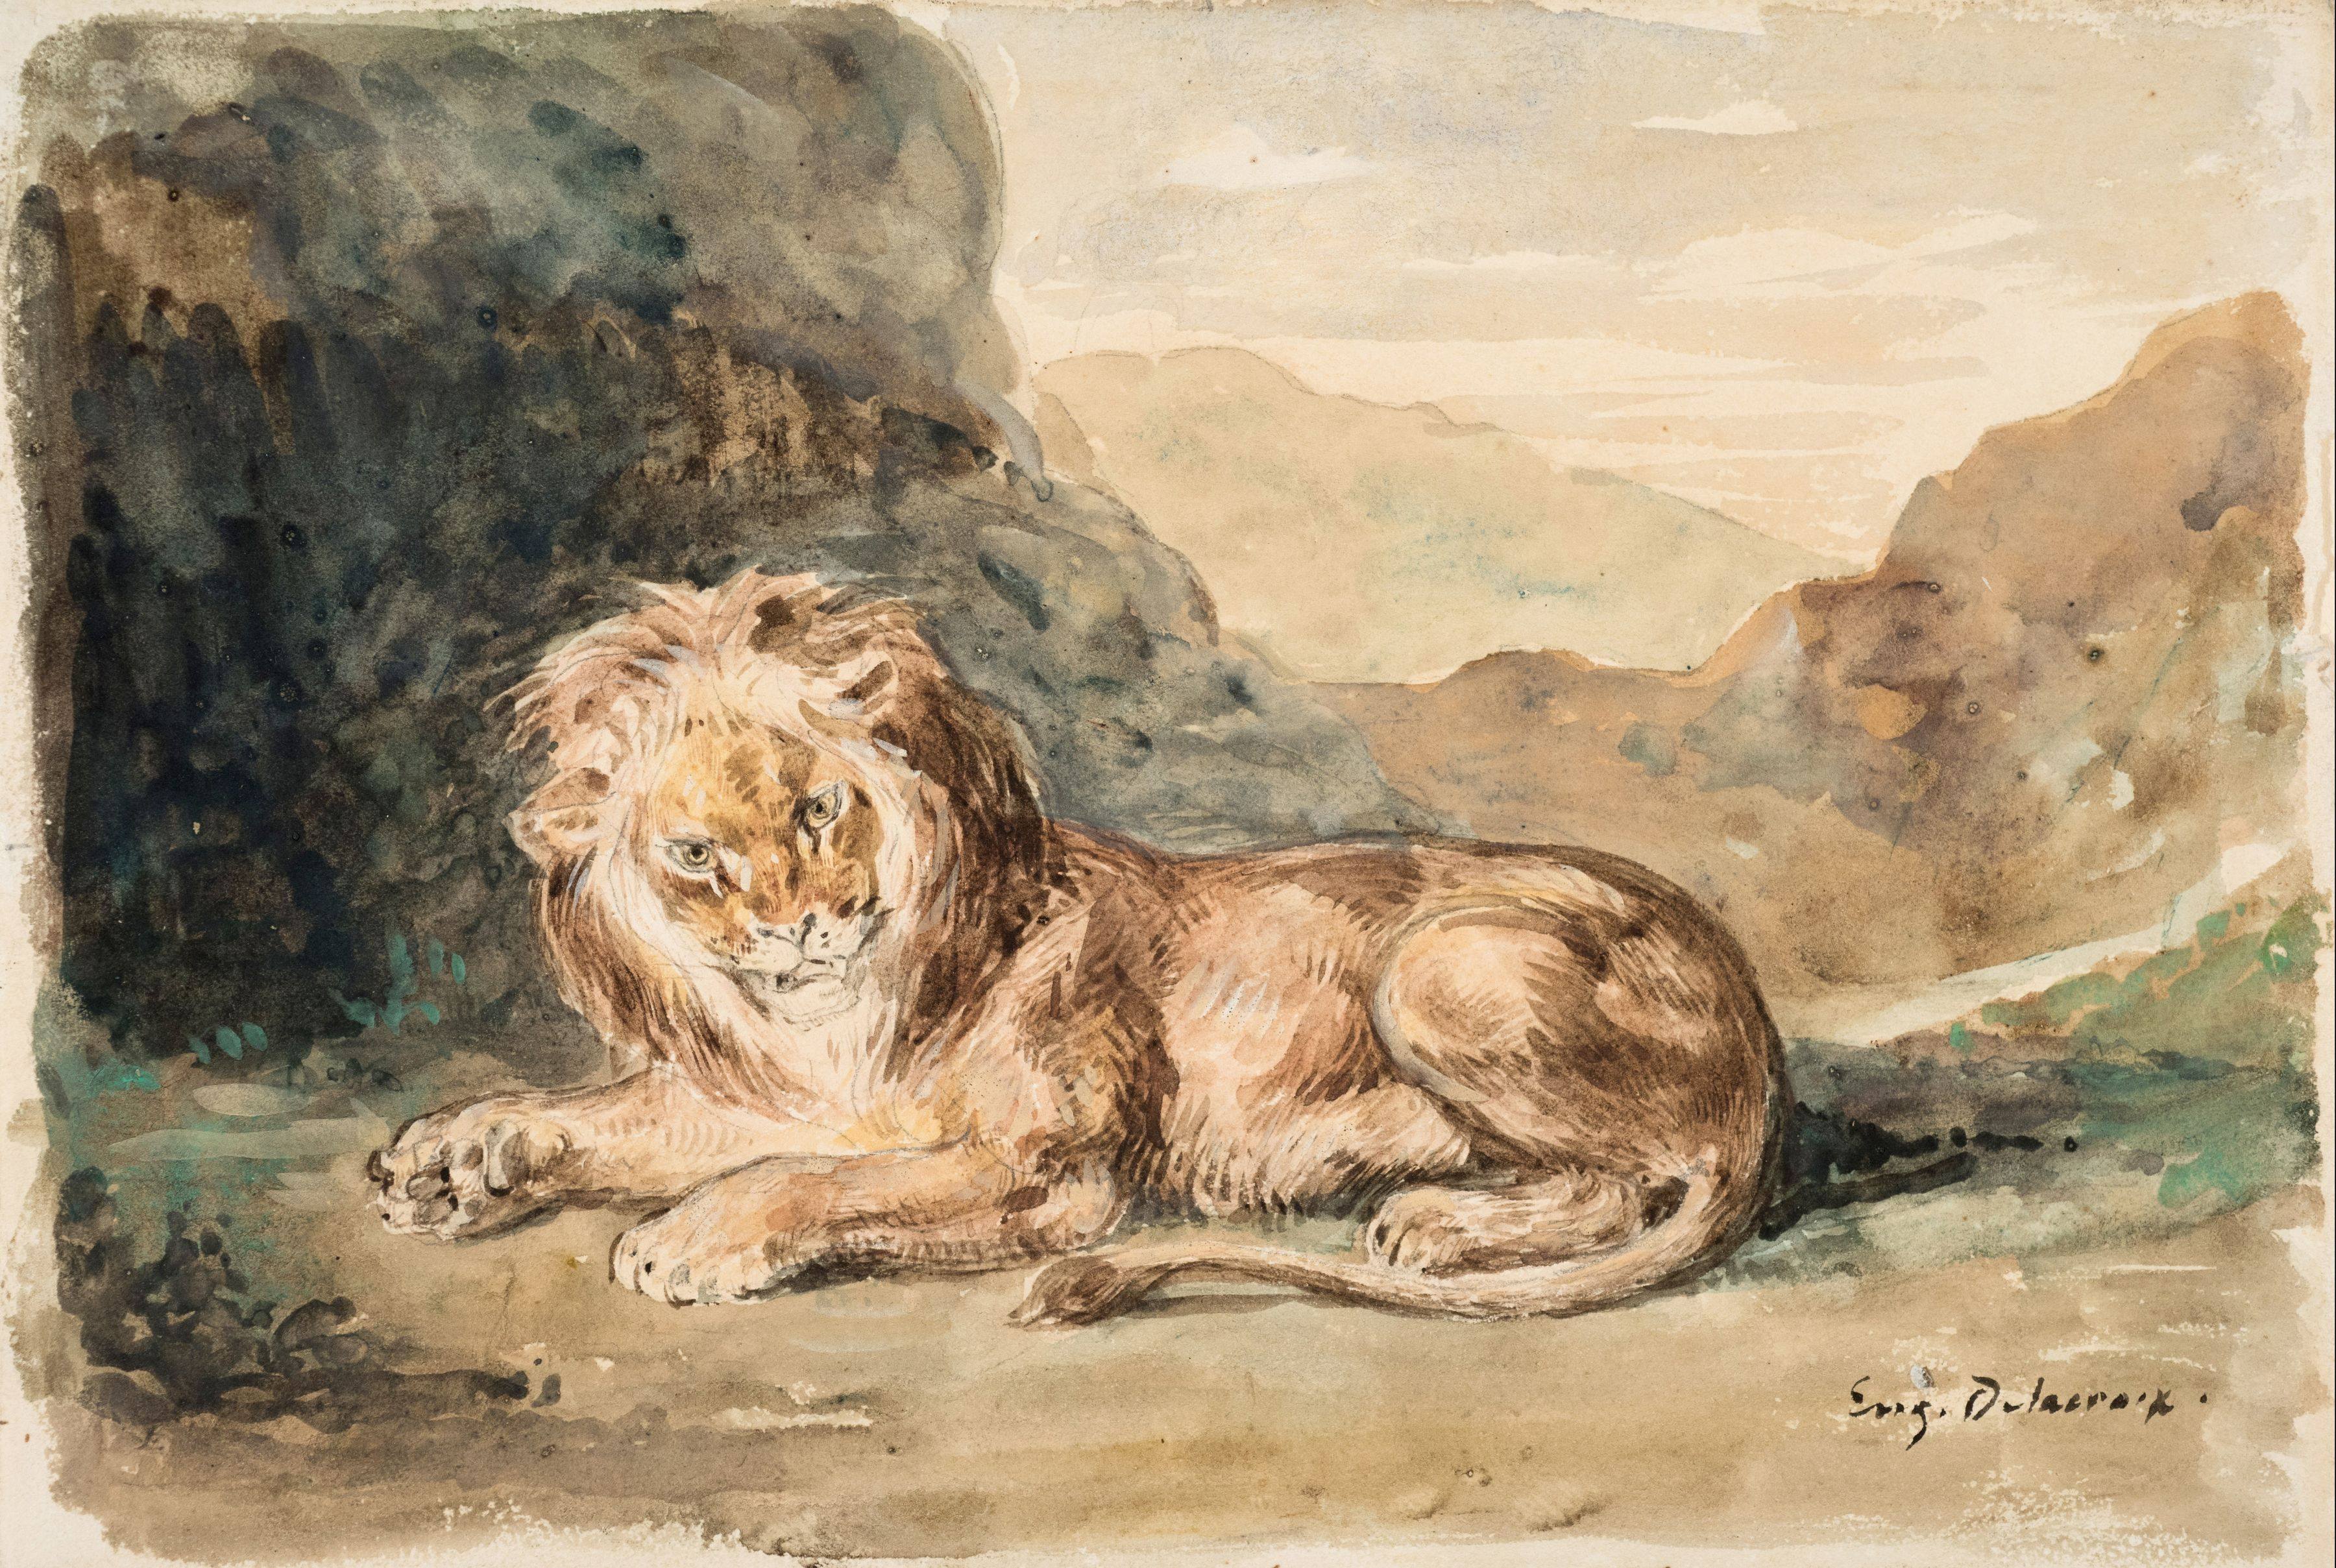 Eugene delacroix Seated Lion in a Landscape    Watercolor on paper 7 5/8 x 10 5/8 inches